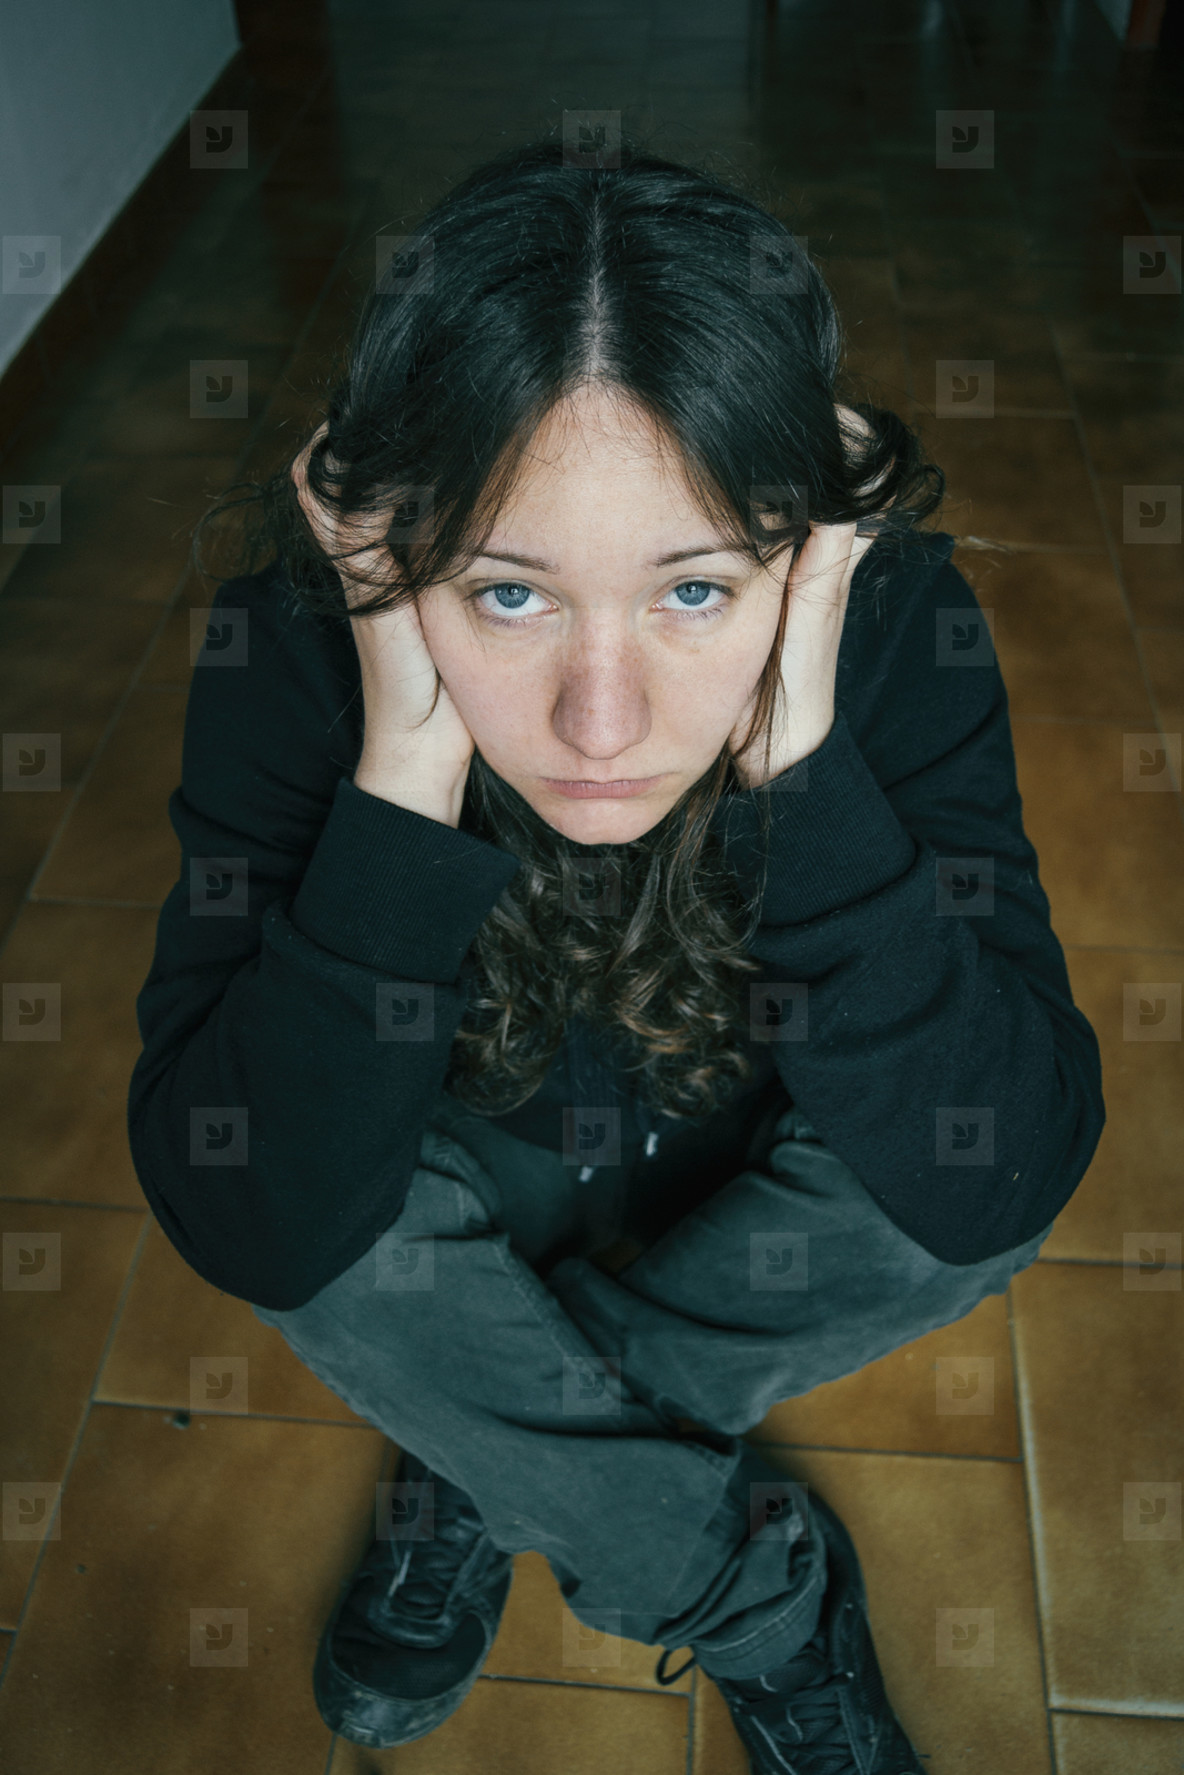 thoughtful girl sitting on the floor with her hands on her head